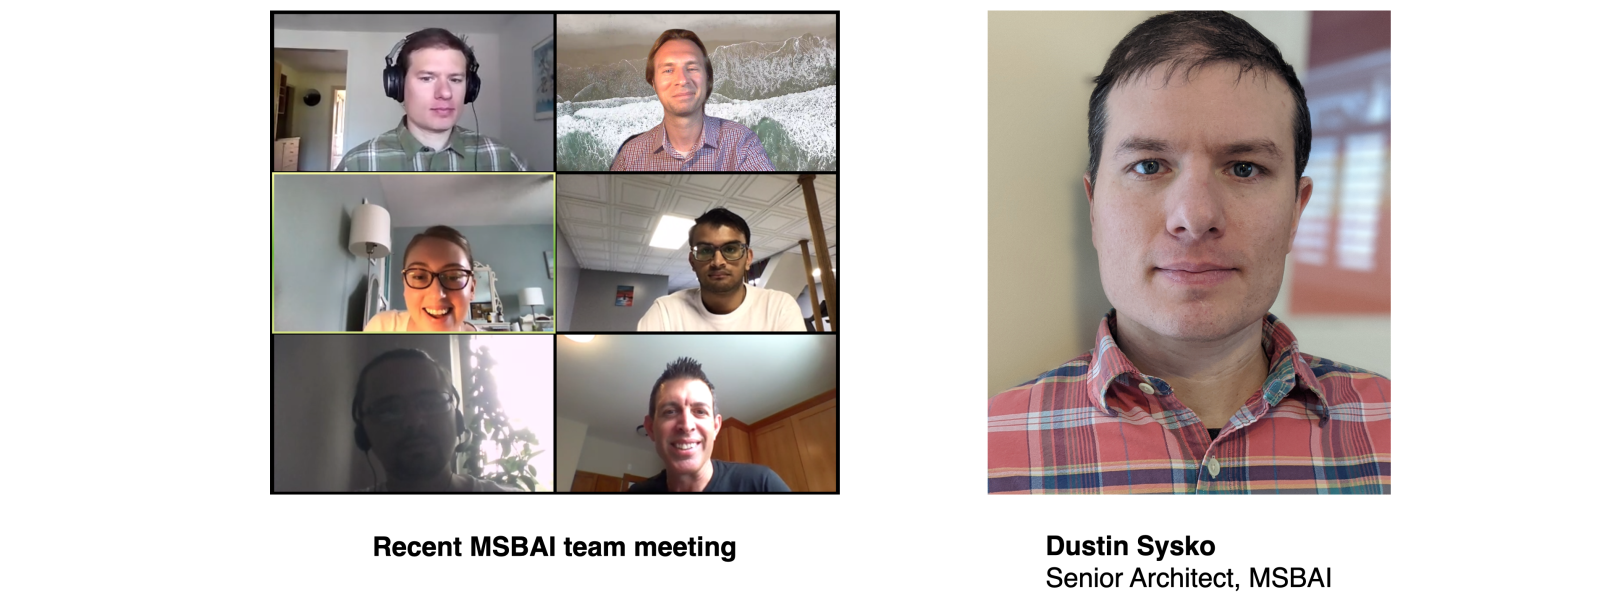 The MSBAI team is growing!